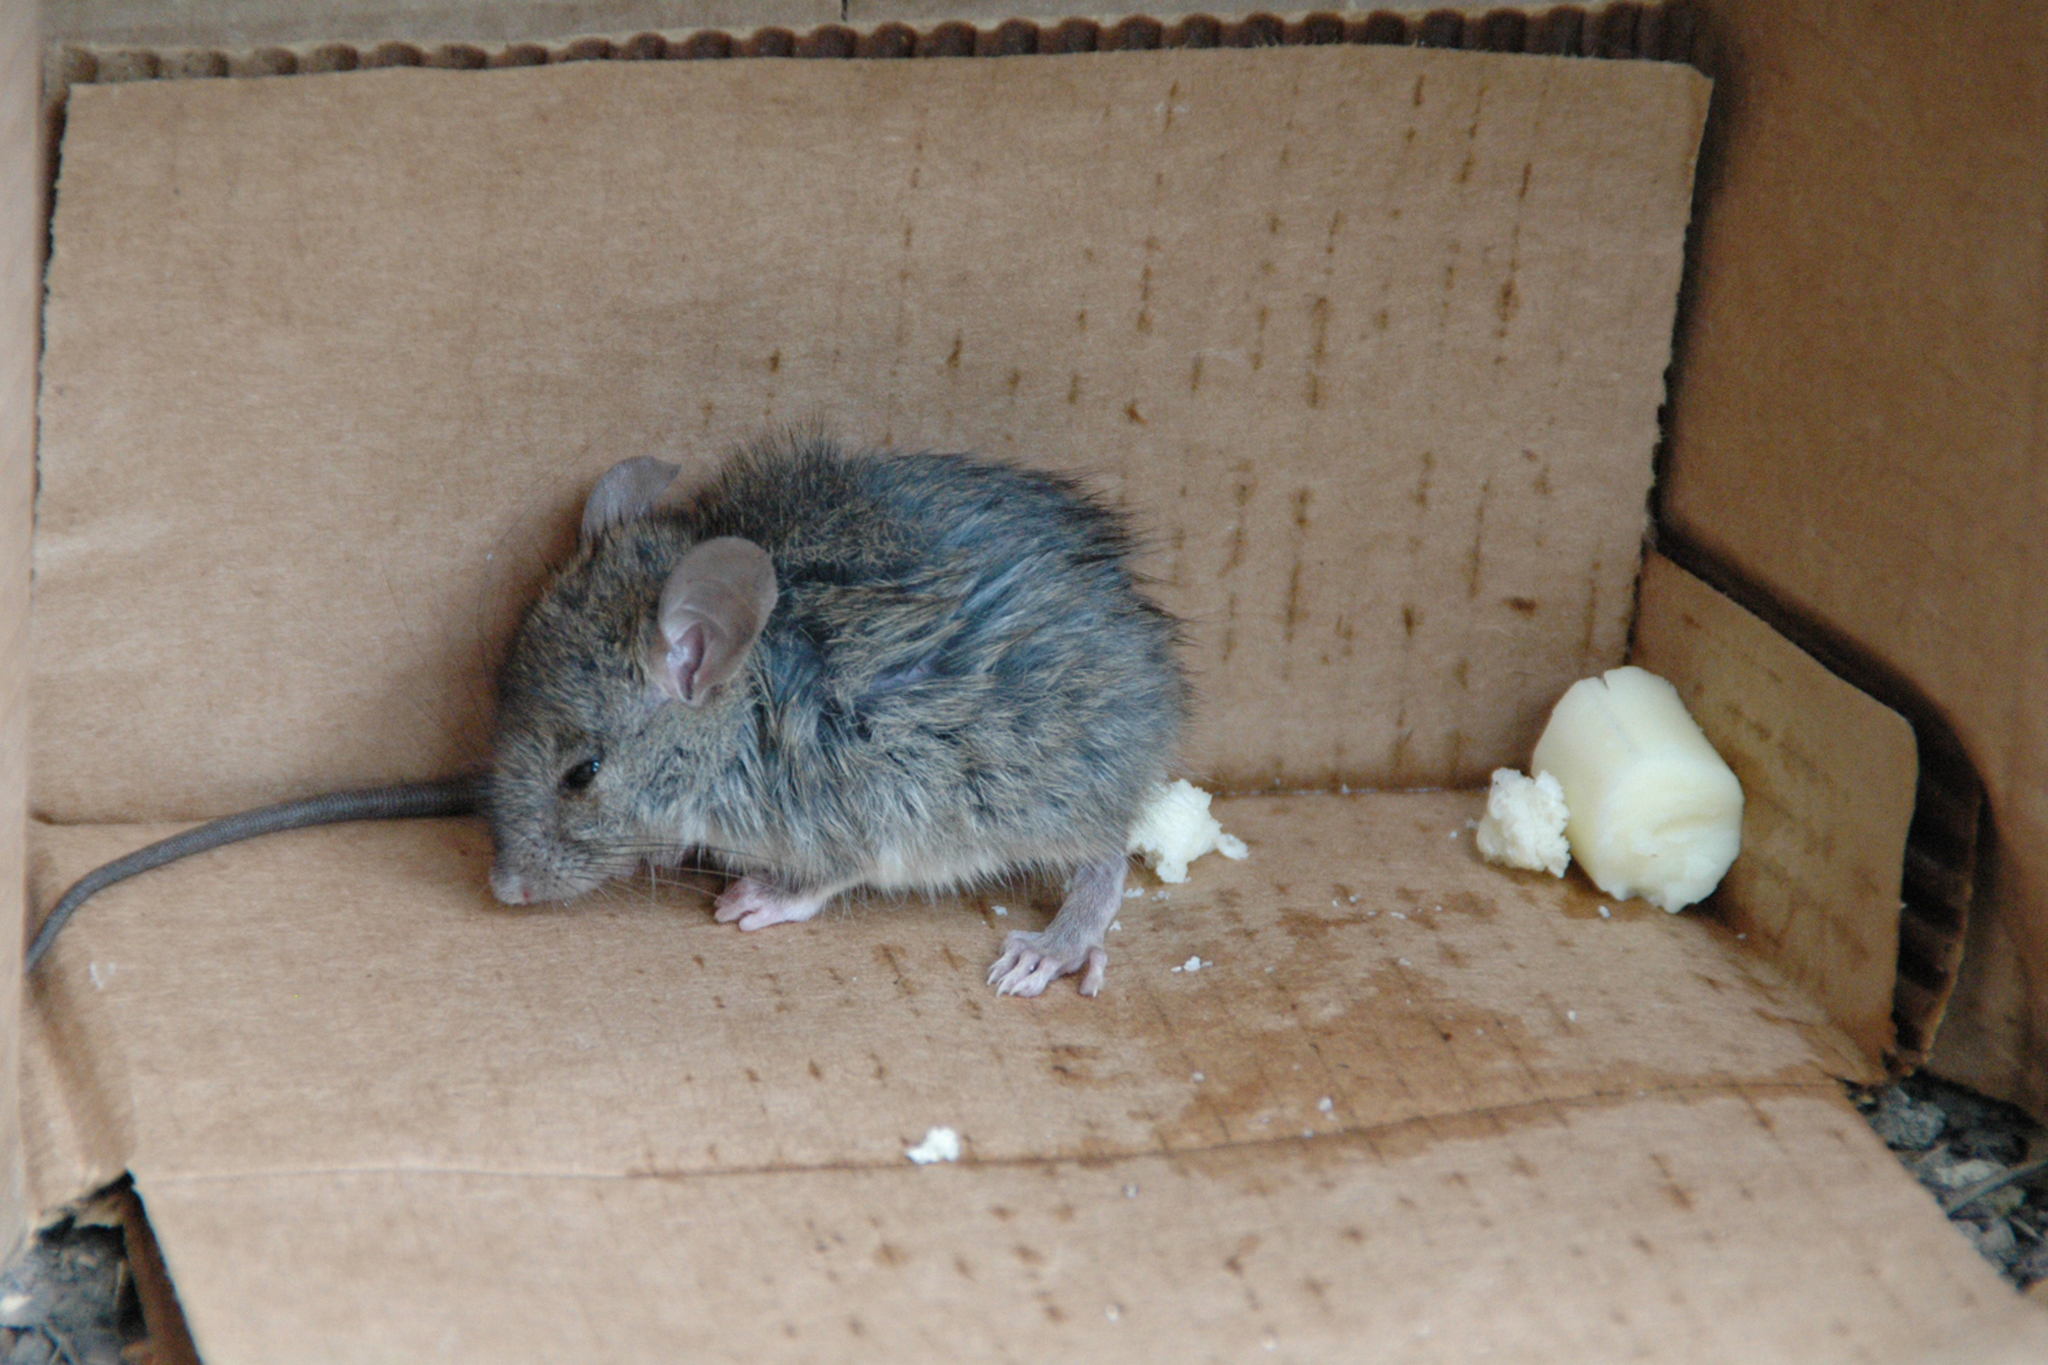 What the hell are we supposed to do with mice in our apartments?